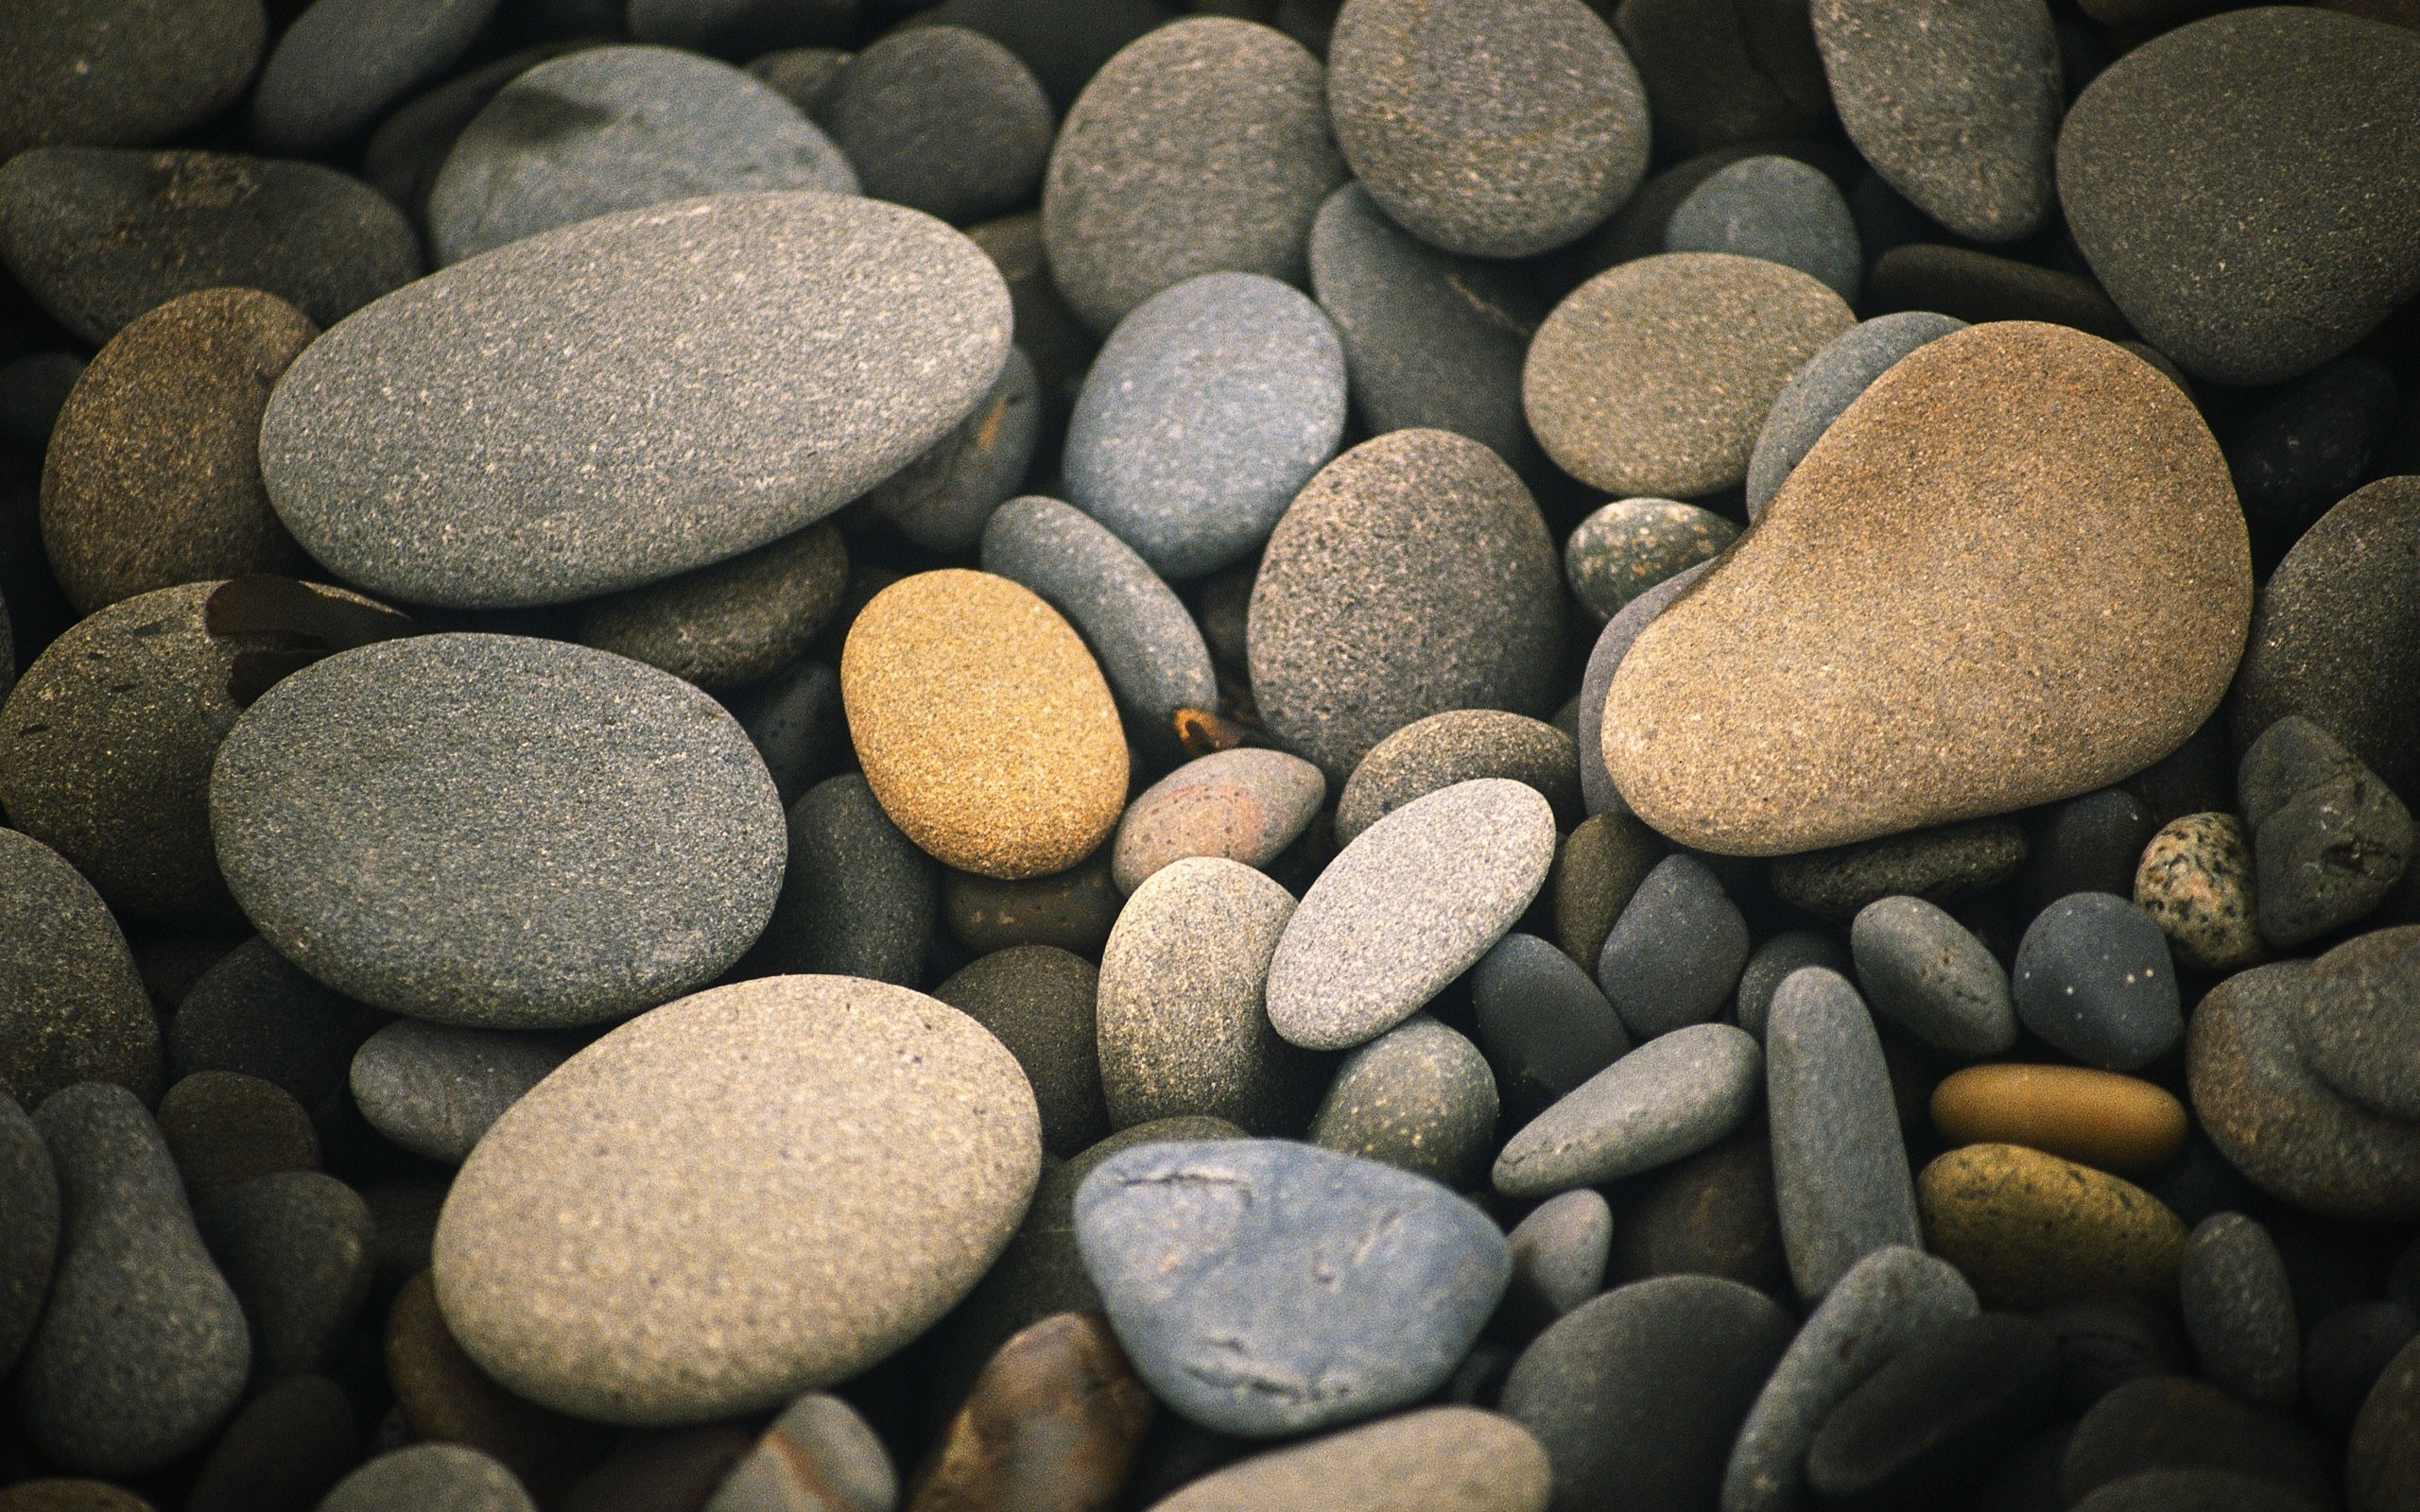 2560x1600 3d stone high resolution wallpaper 1080p